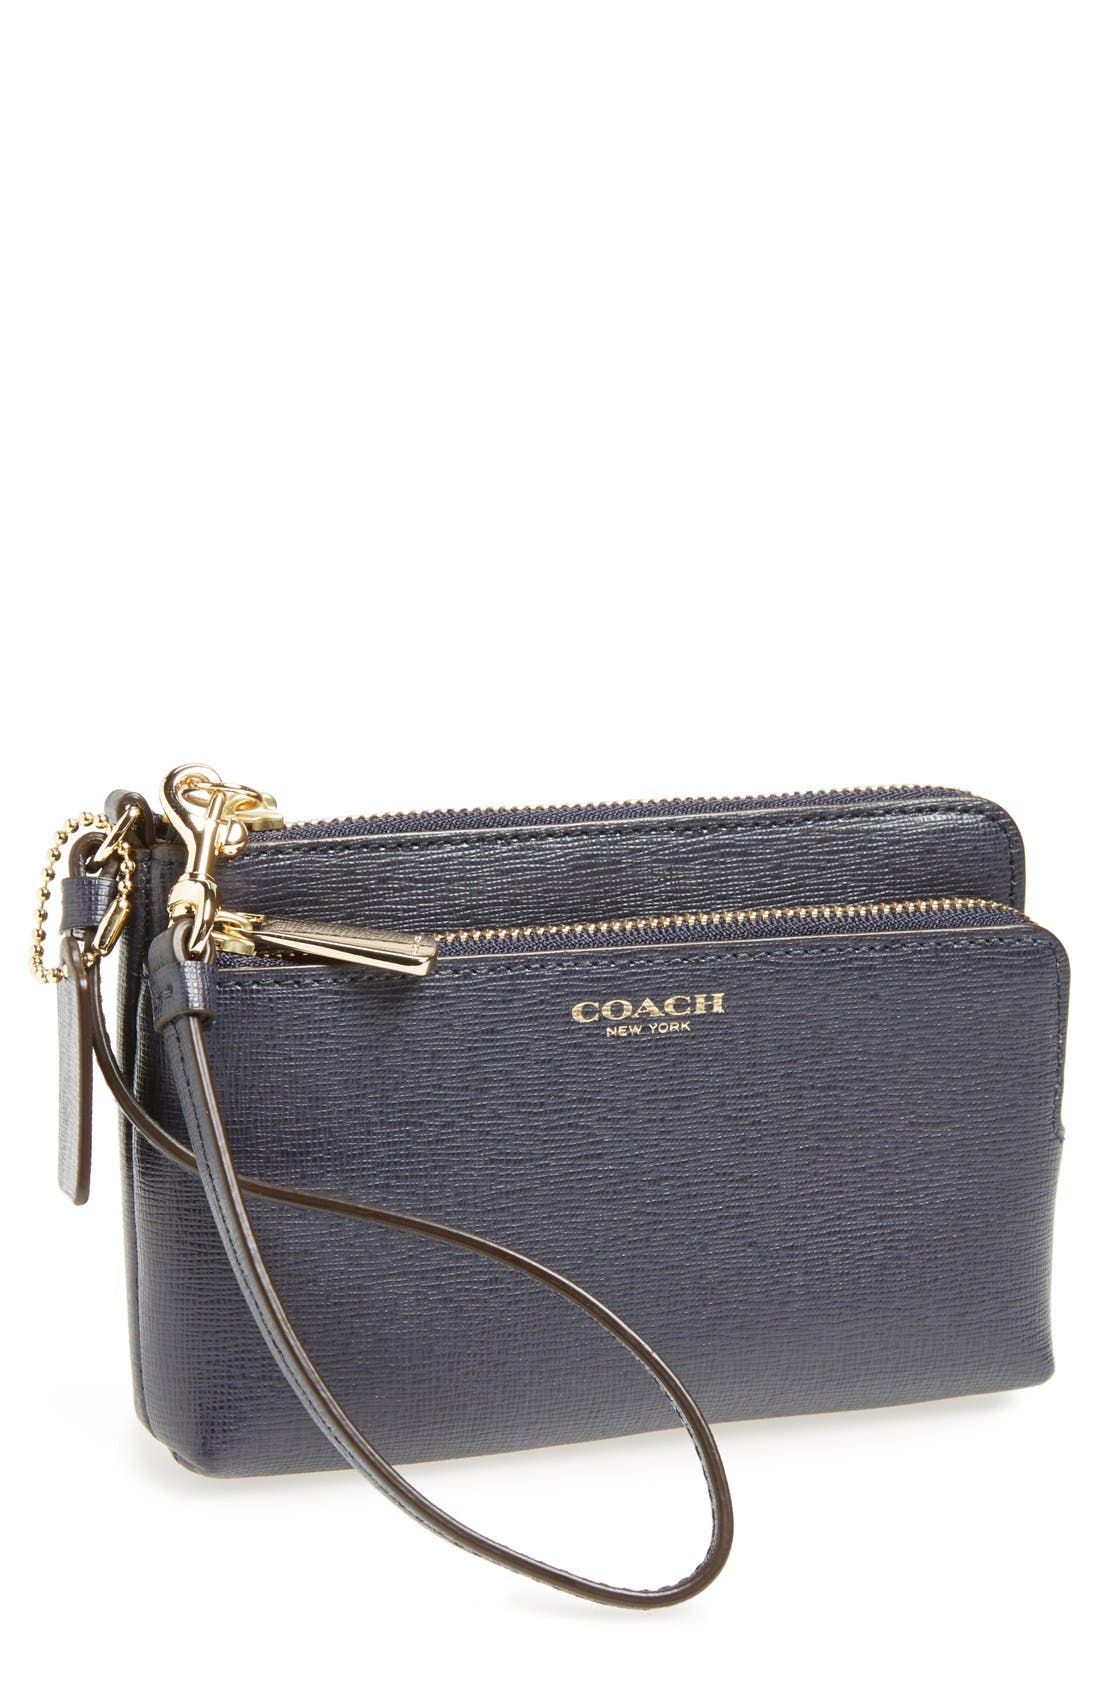 Alternate Image 1 Selected - COACH Saffiano Leather Phone Wristlet